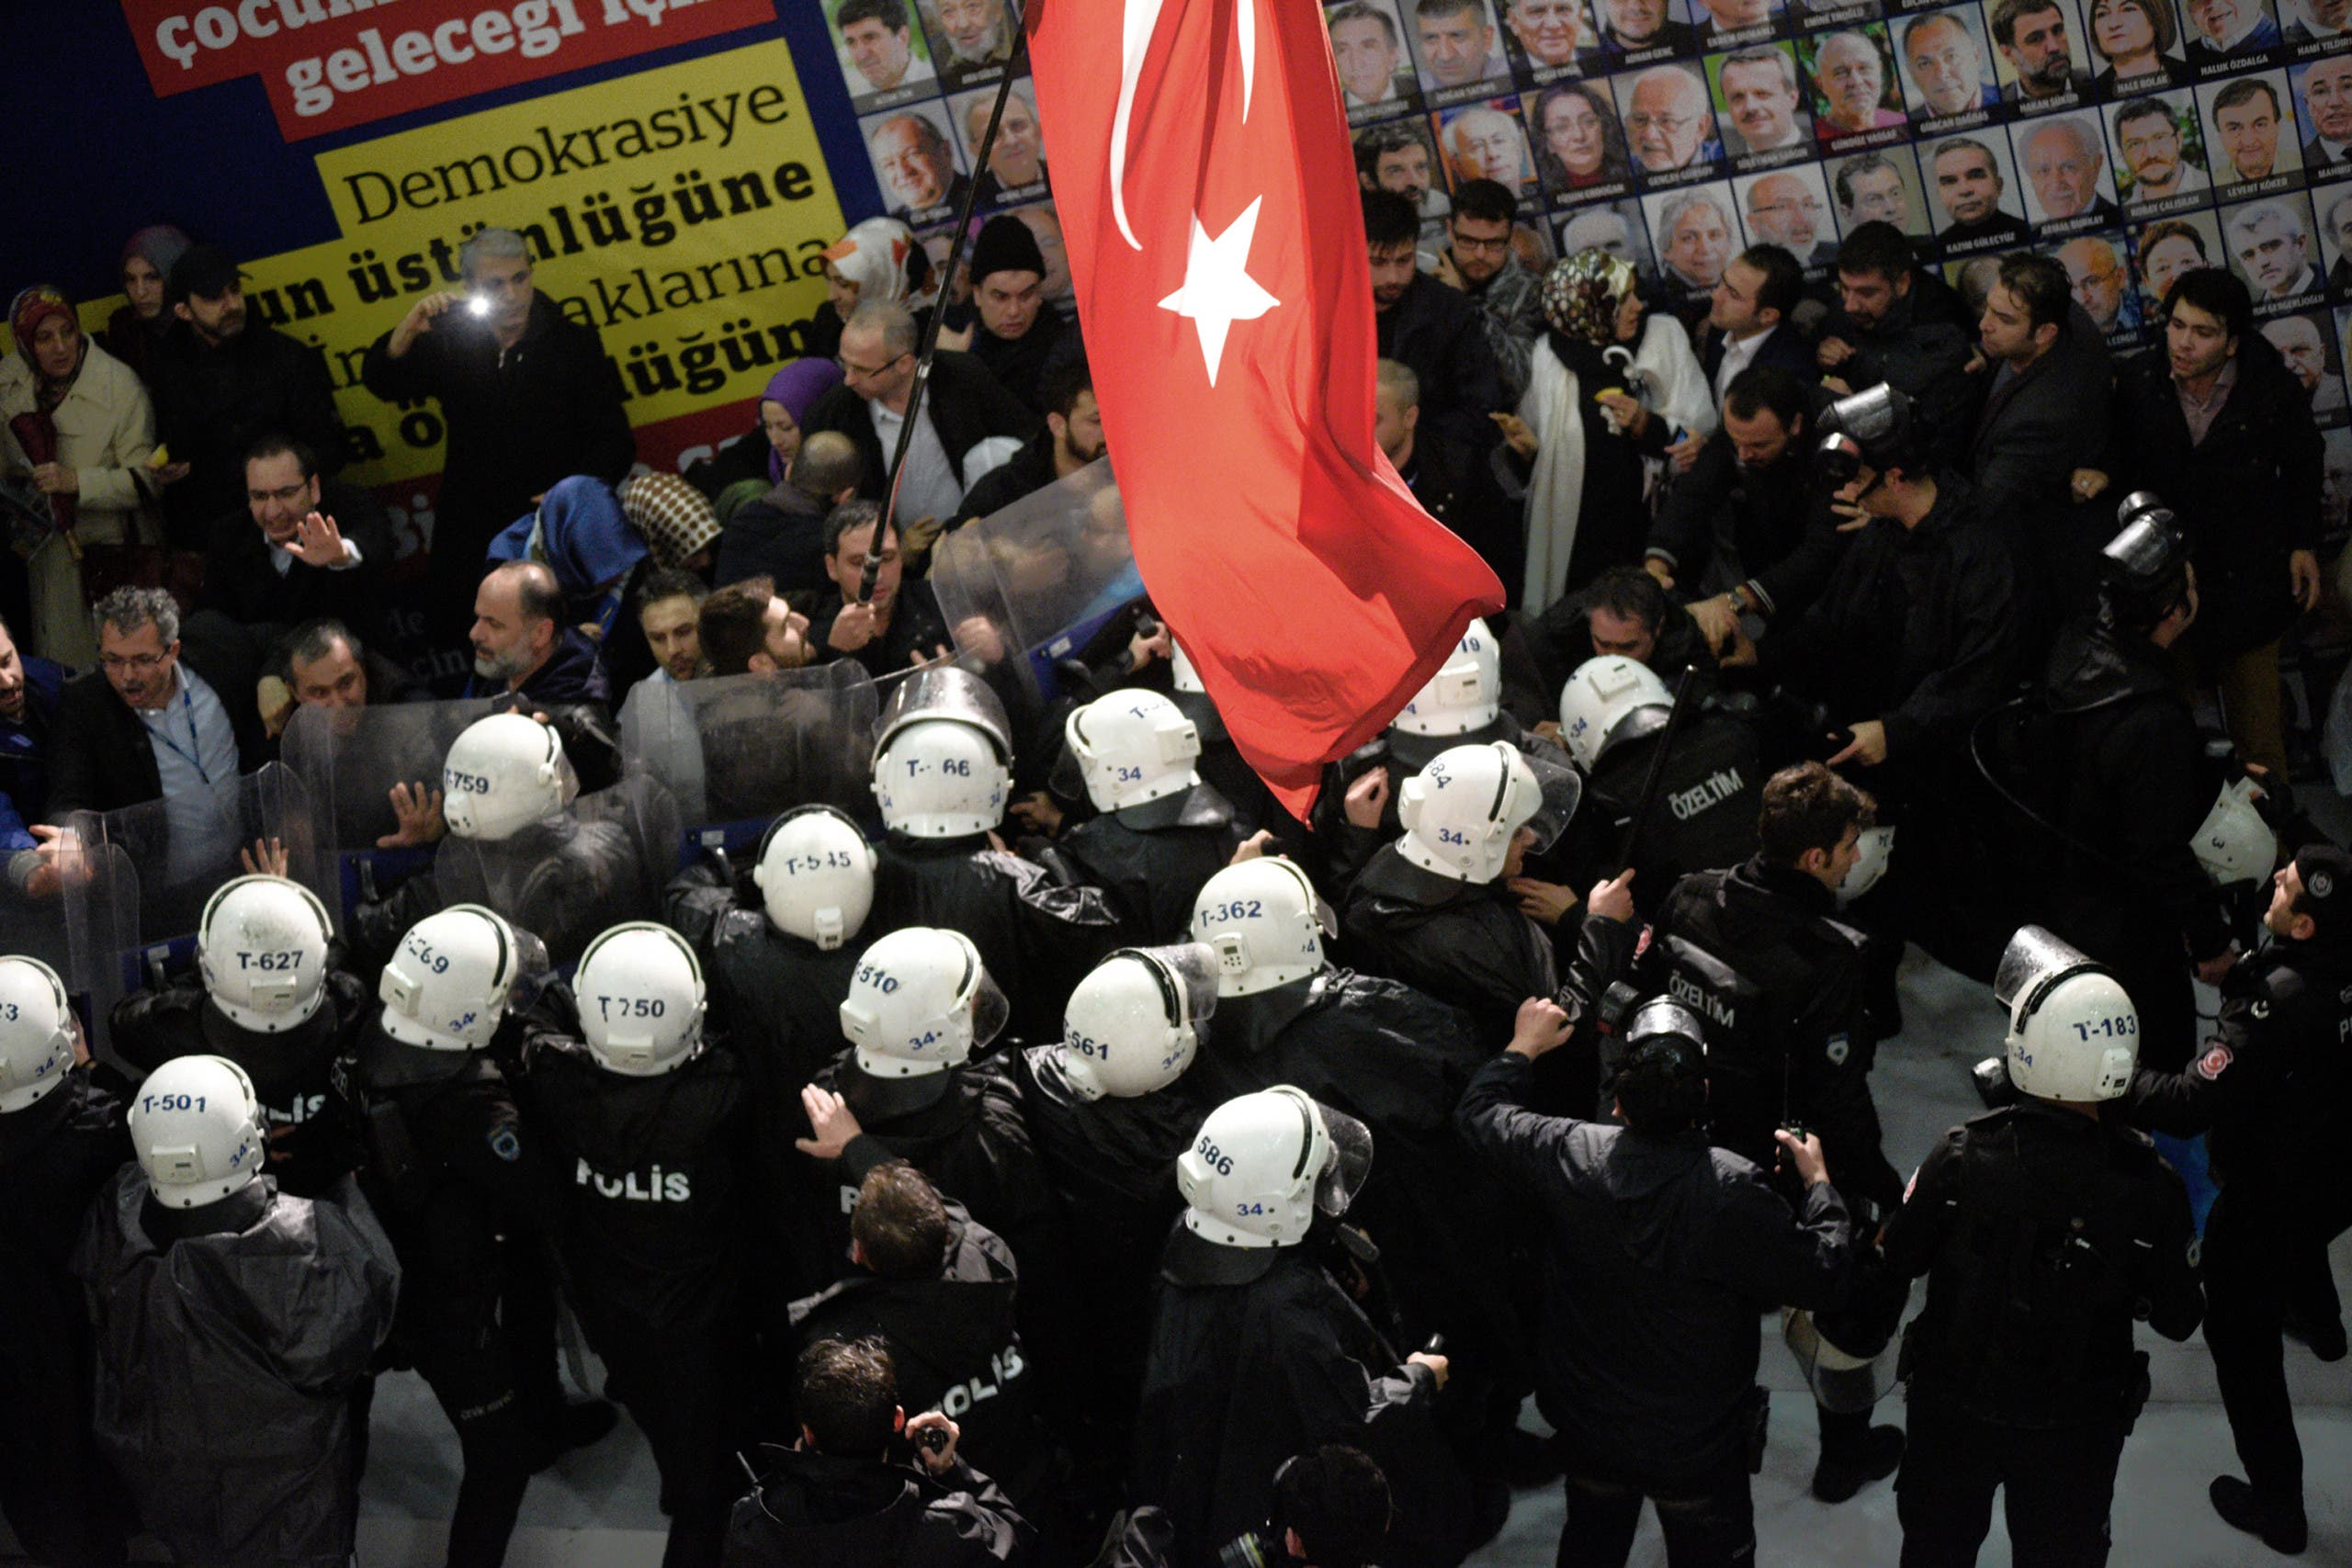 Riot police enter the headquarters of Zaman newspaper after using teargas and water cannons against the people gathered outside in support, in Istanbul on March 4, 2016. (AP)